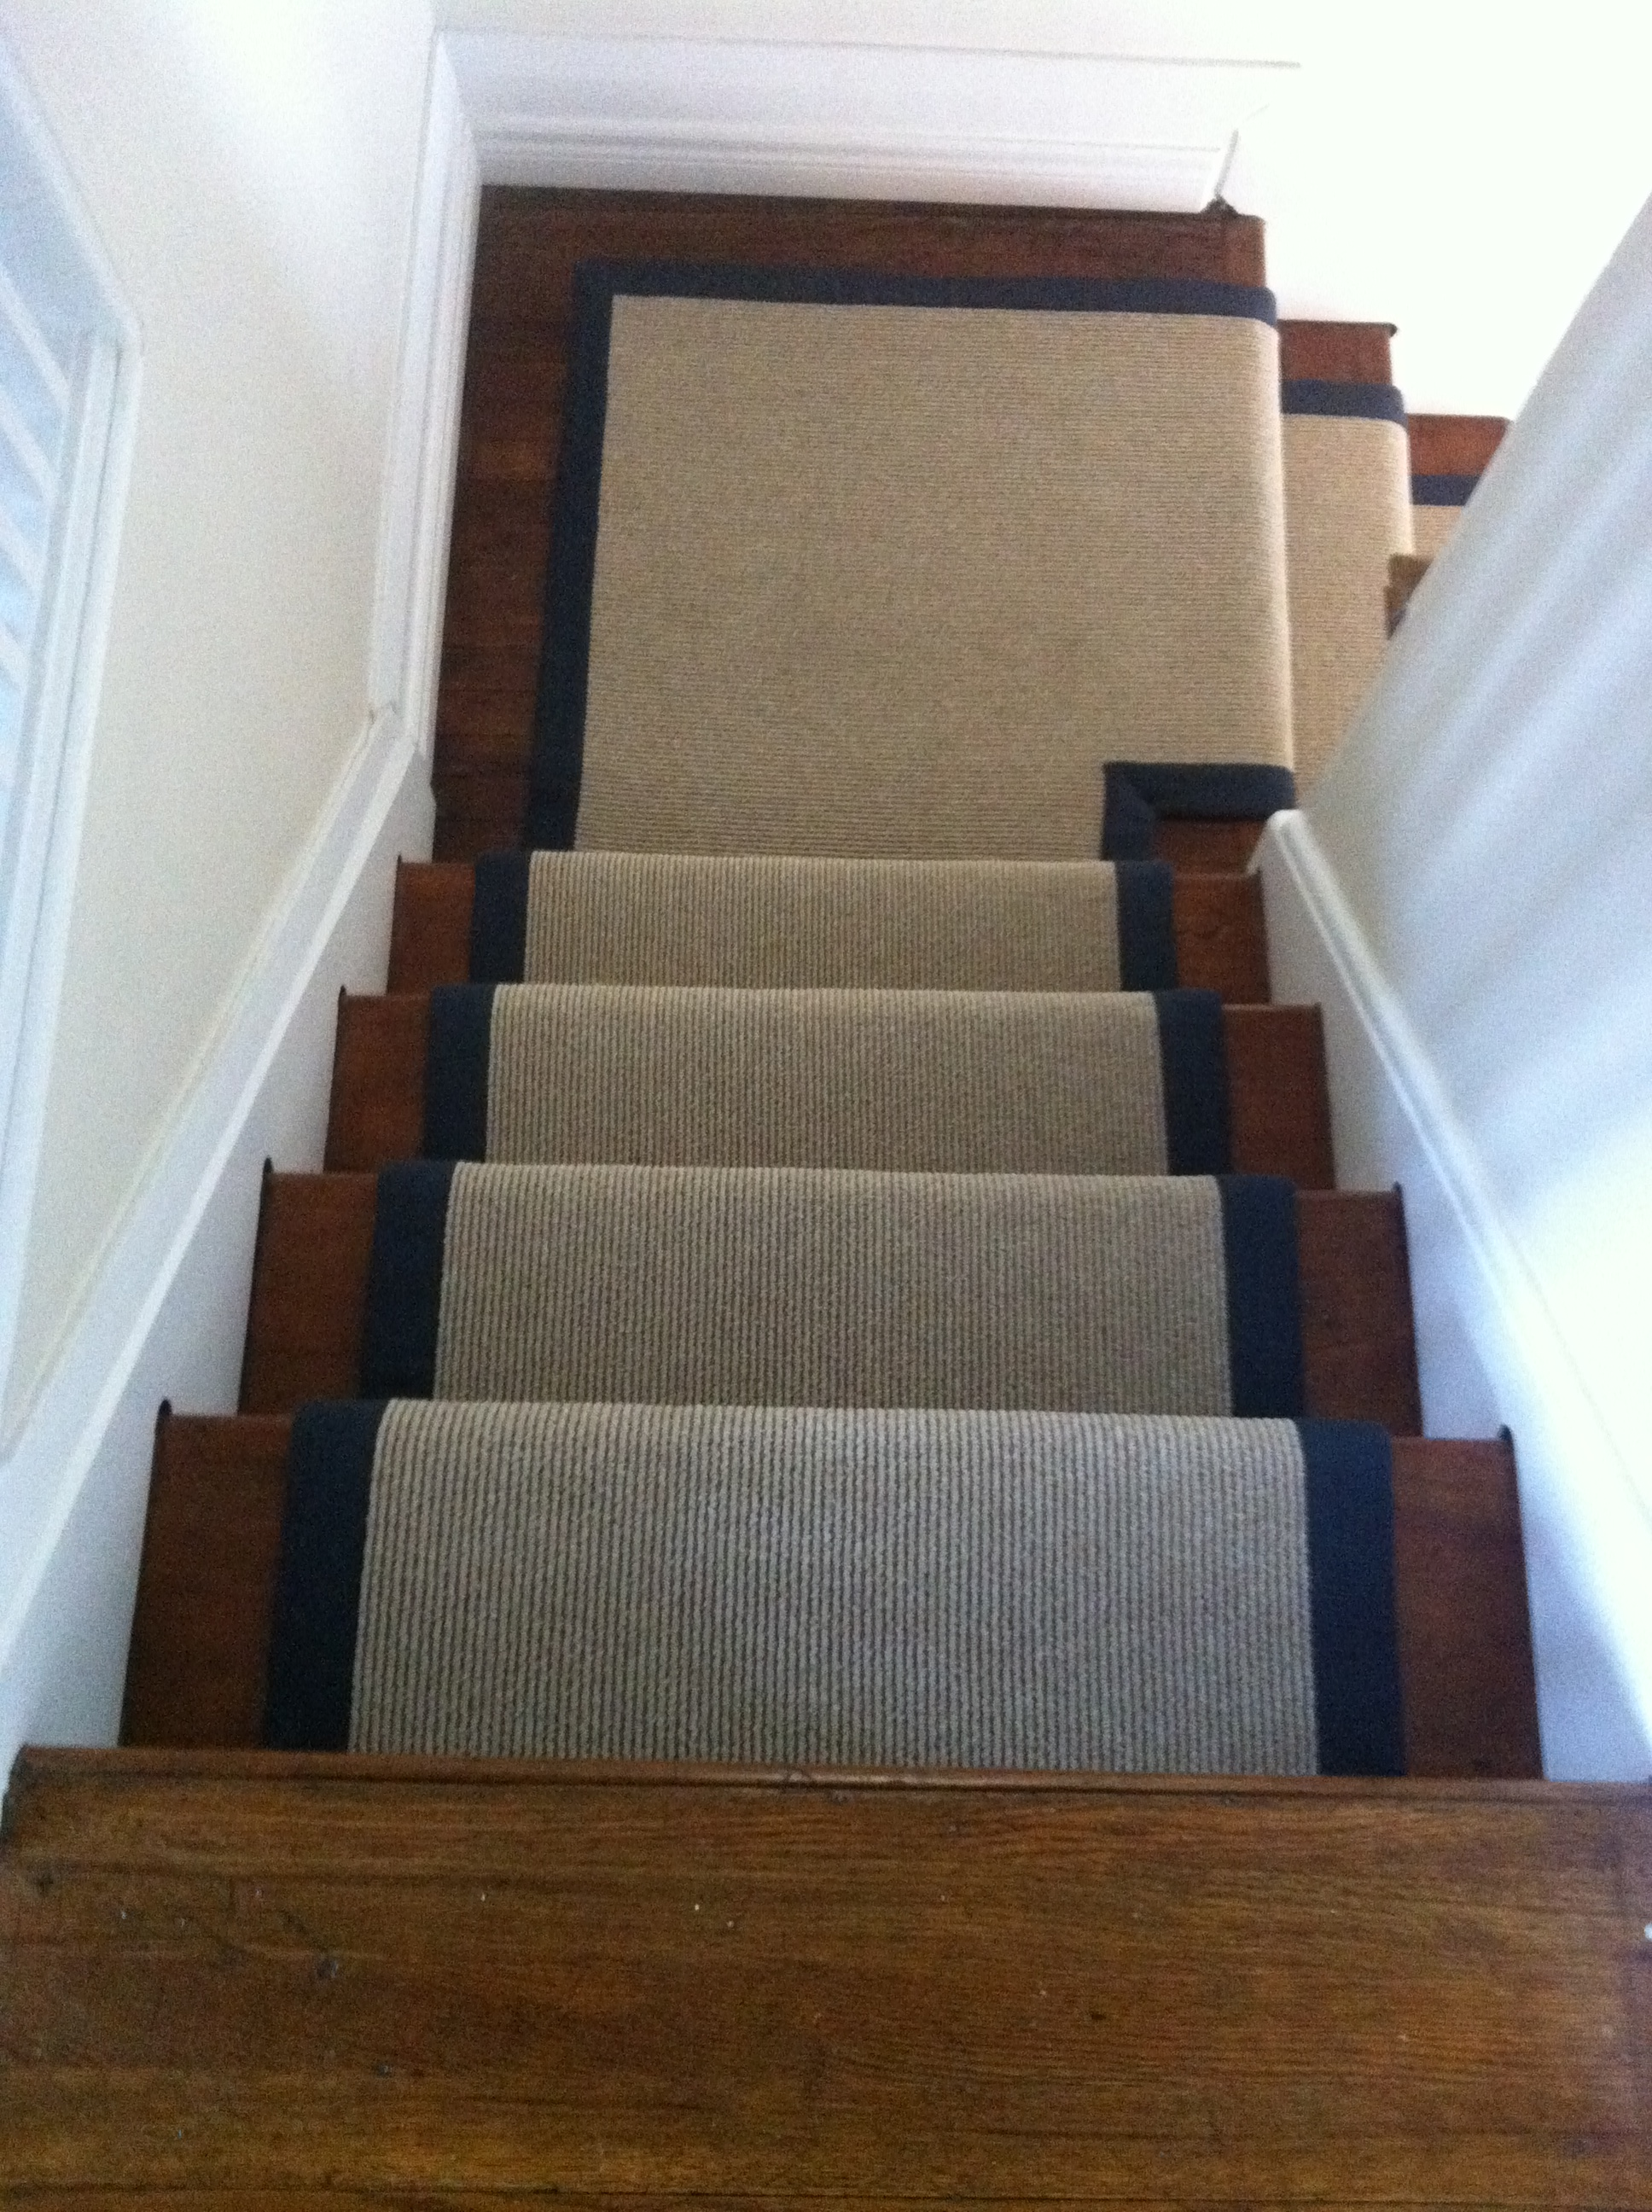 Genial ... Stair Runner And Landing, Berber Carpet Runner Toronto